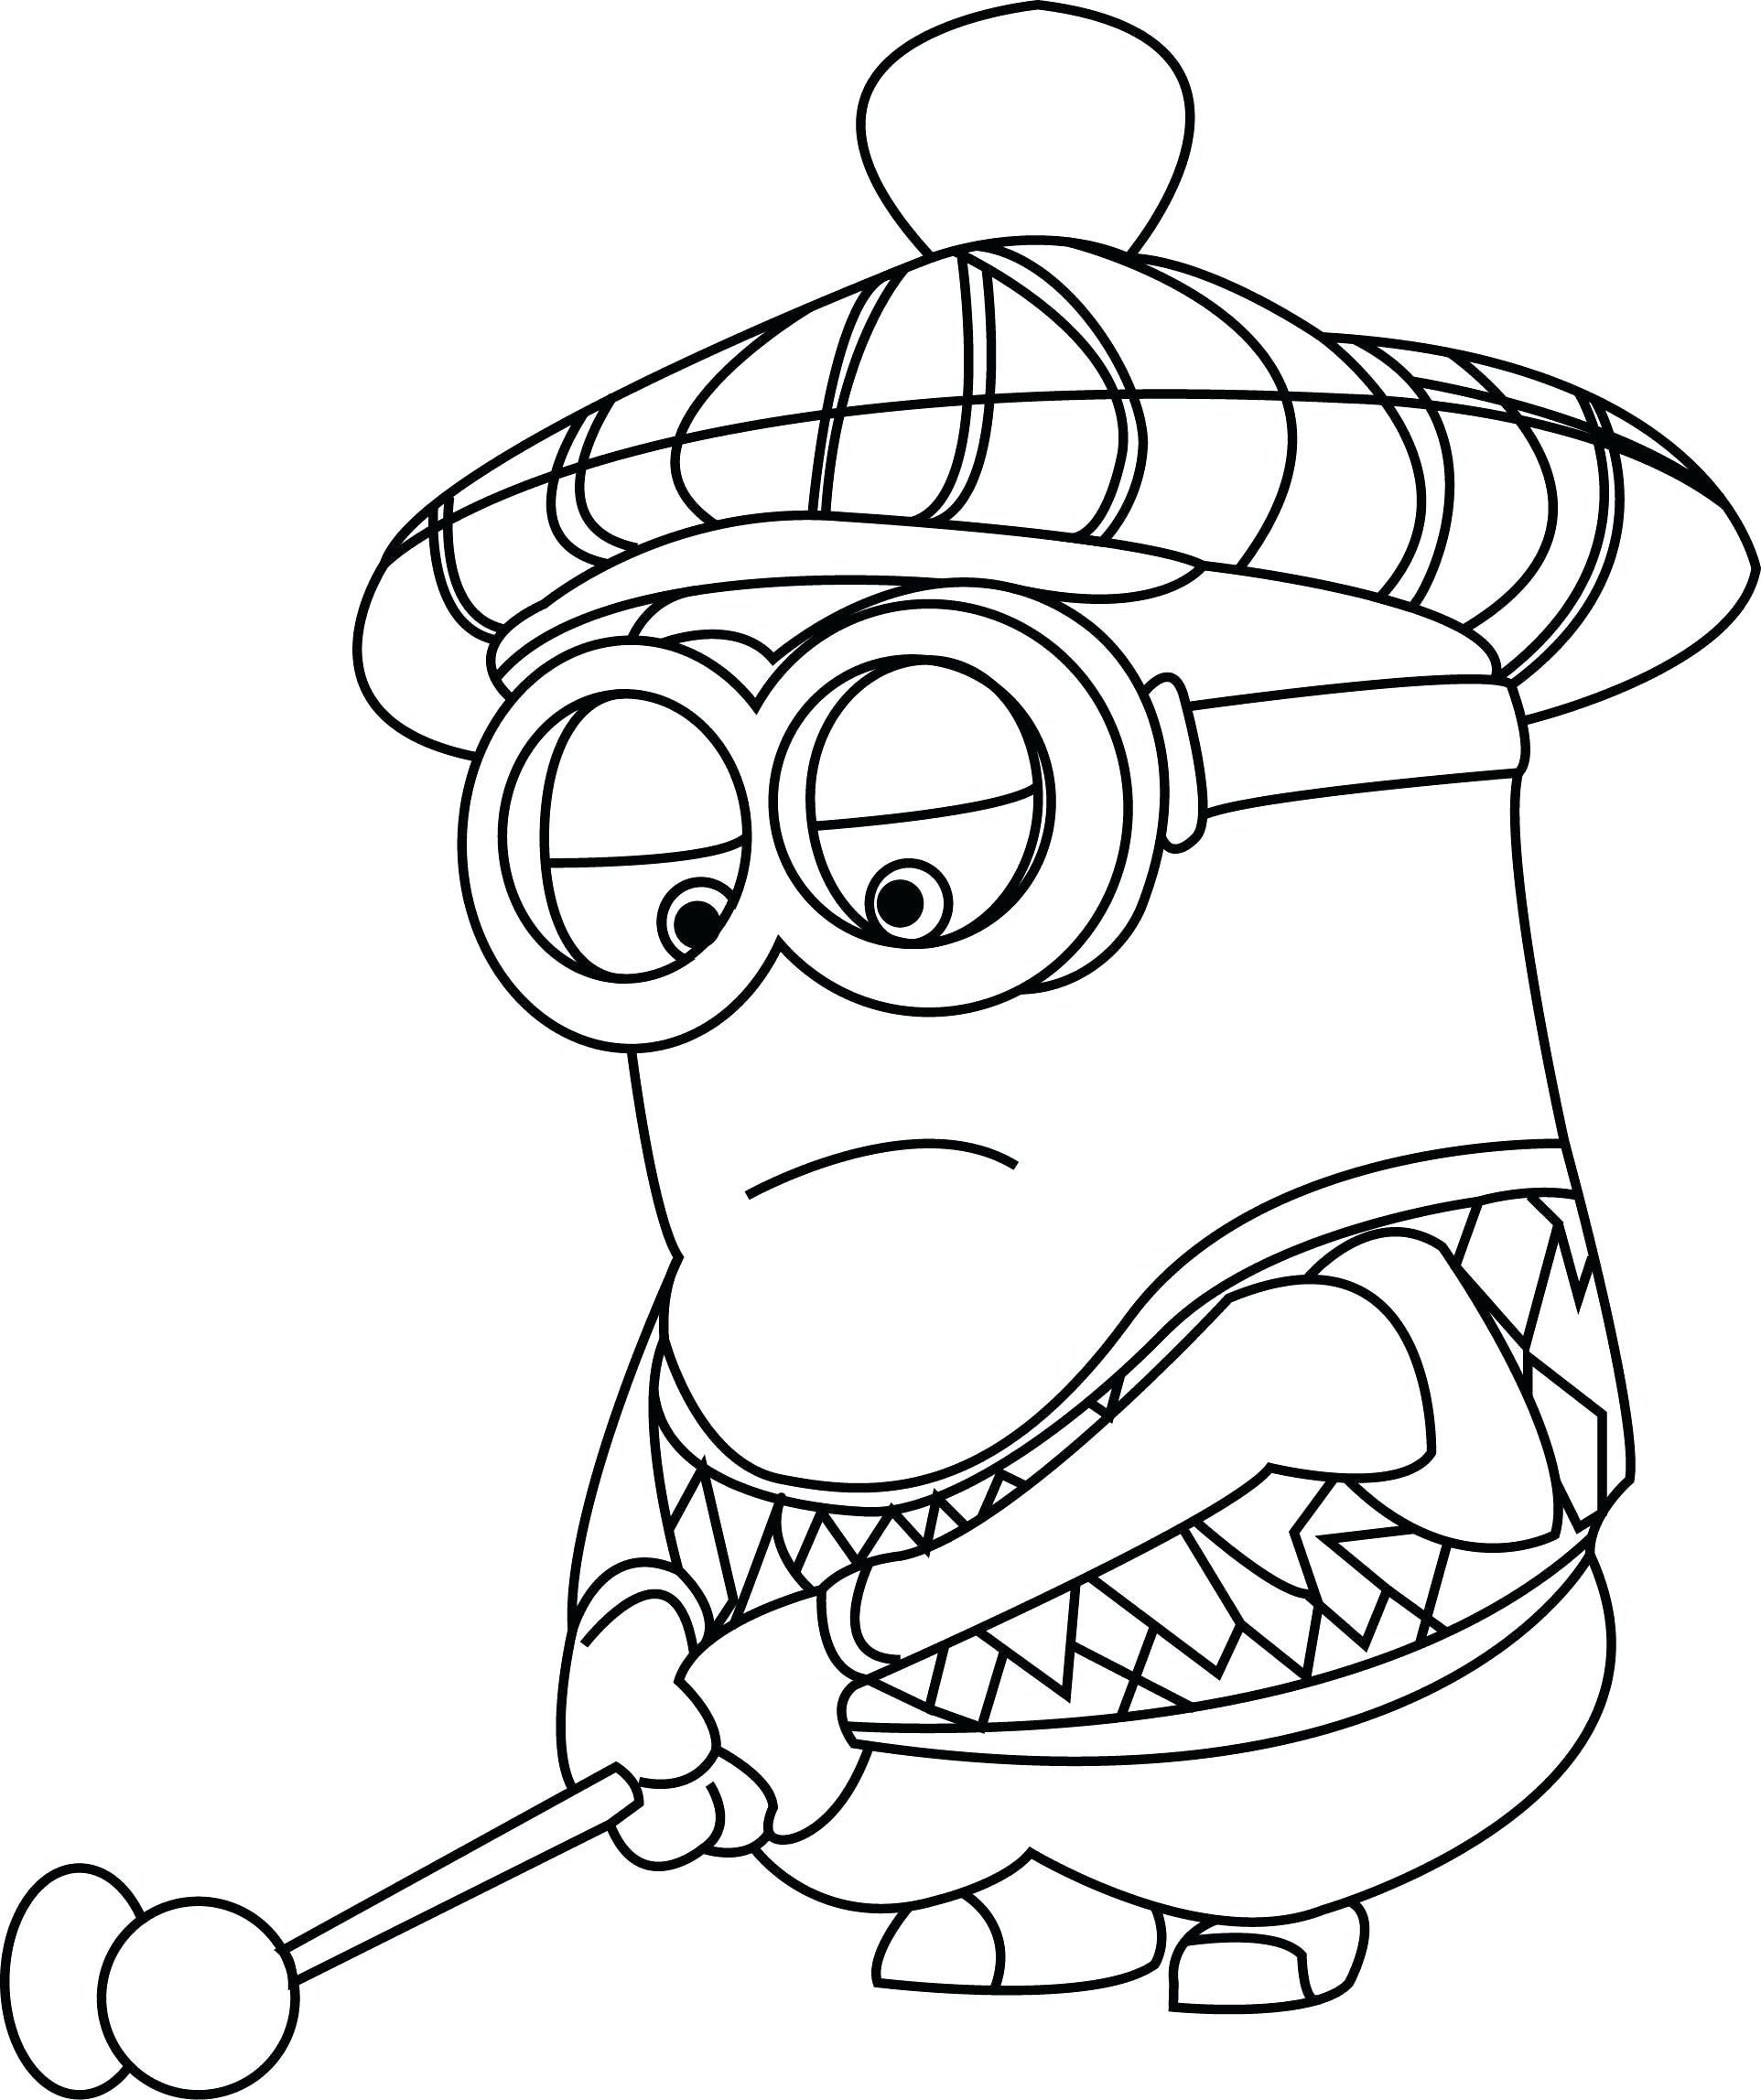 Minions Coloring Pages To Print Fresh Cute Minion Coloring Pages Niagarapaper In 2020 Sports Coloring Pages Minion Coloring Pages Minions Coloring Pages